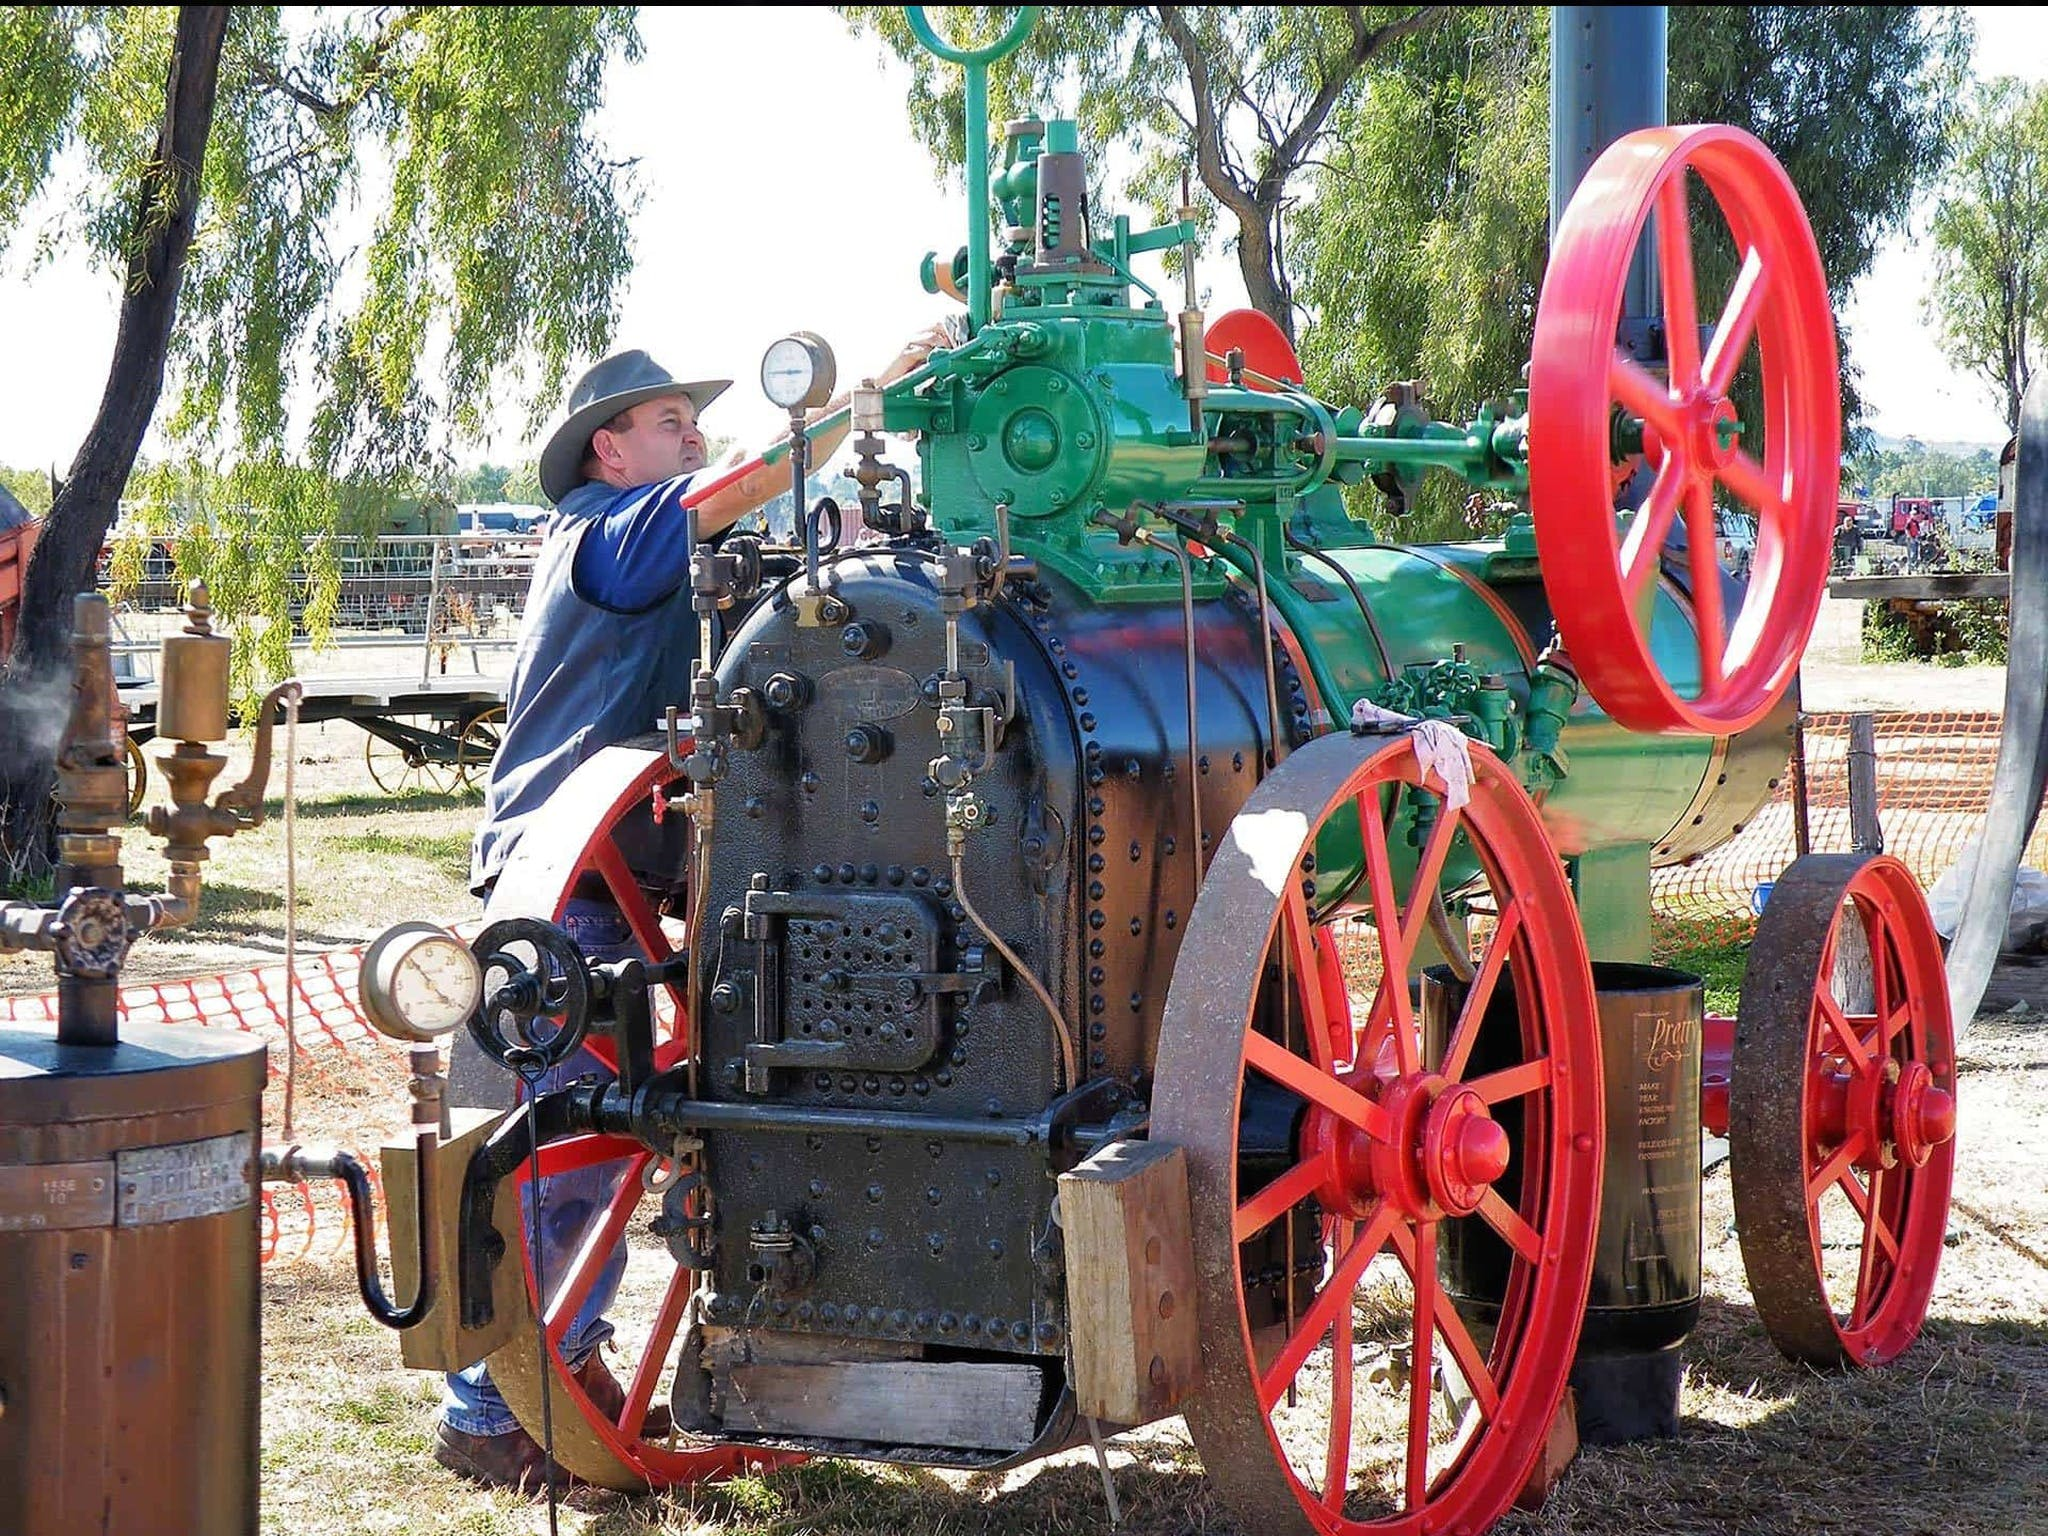 9th Biennial Queensland Heritage Rally - Pubs and Clubs